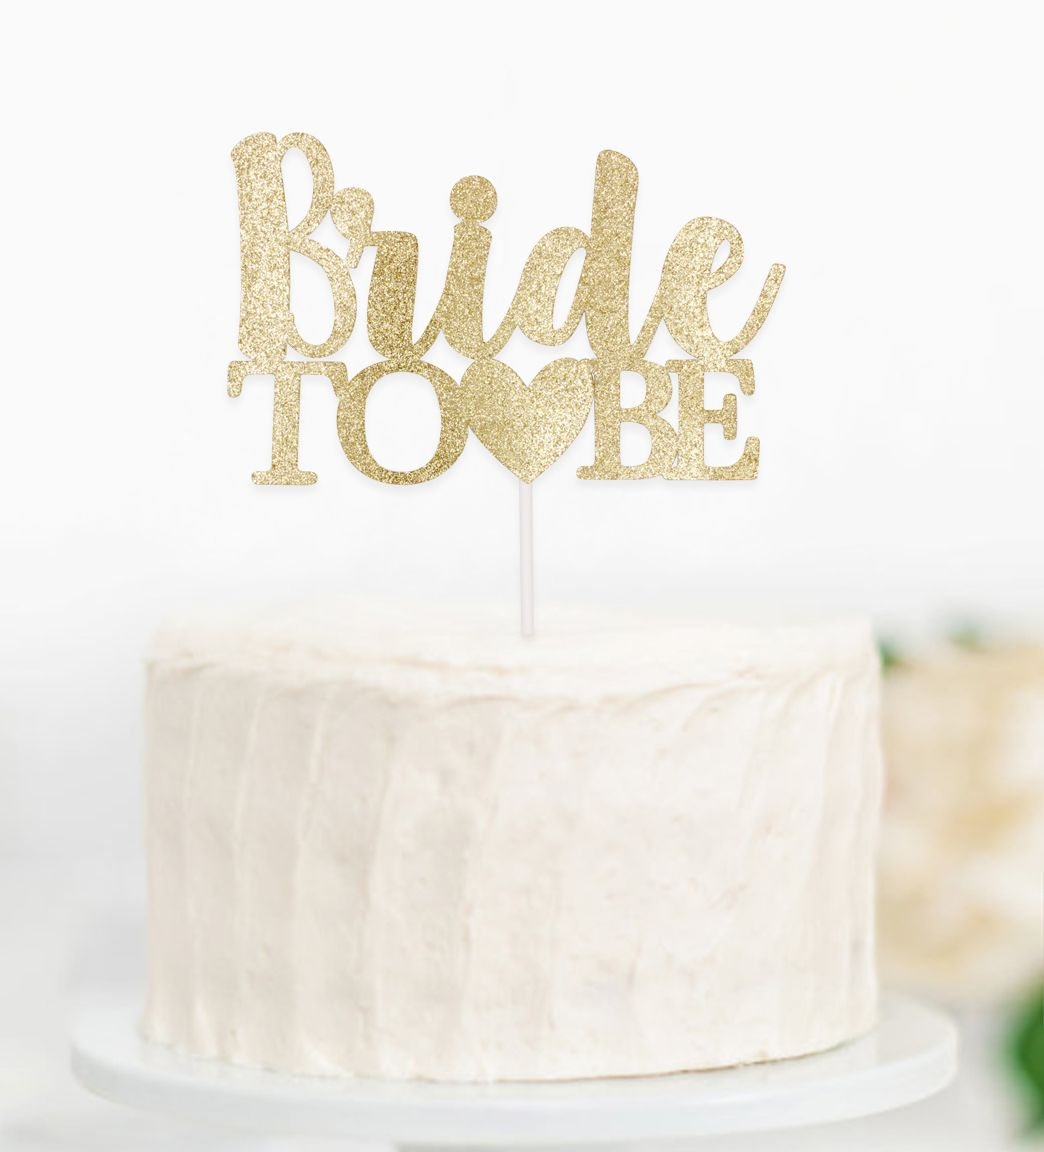 Bride to be cake topper engagement cake topper gold